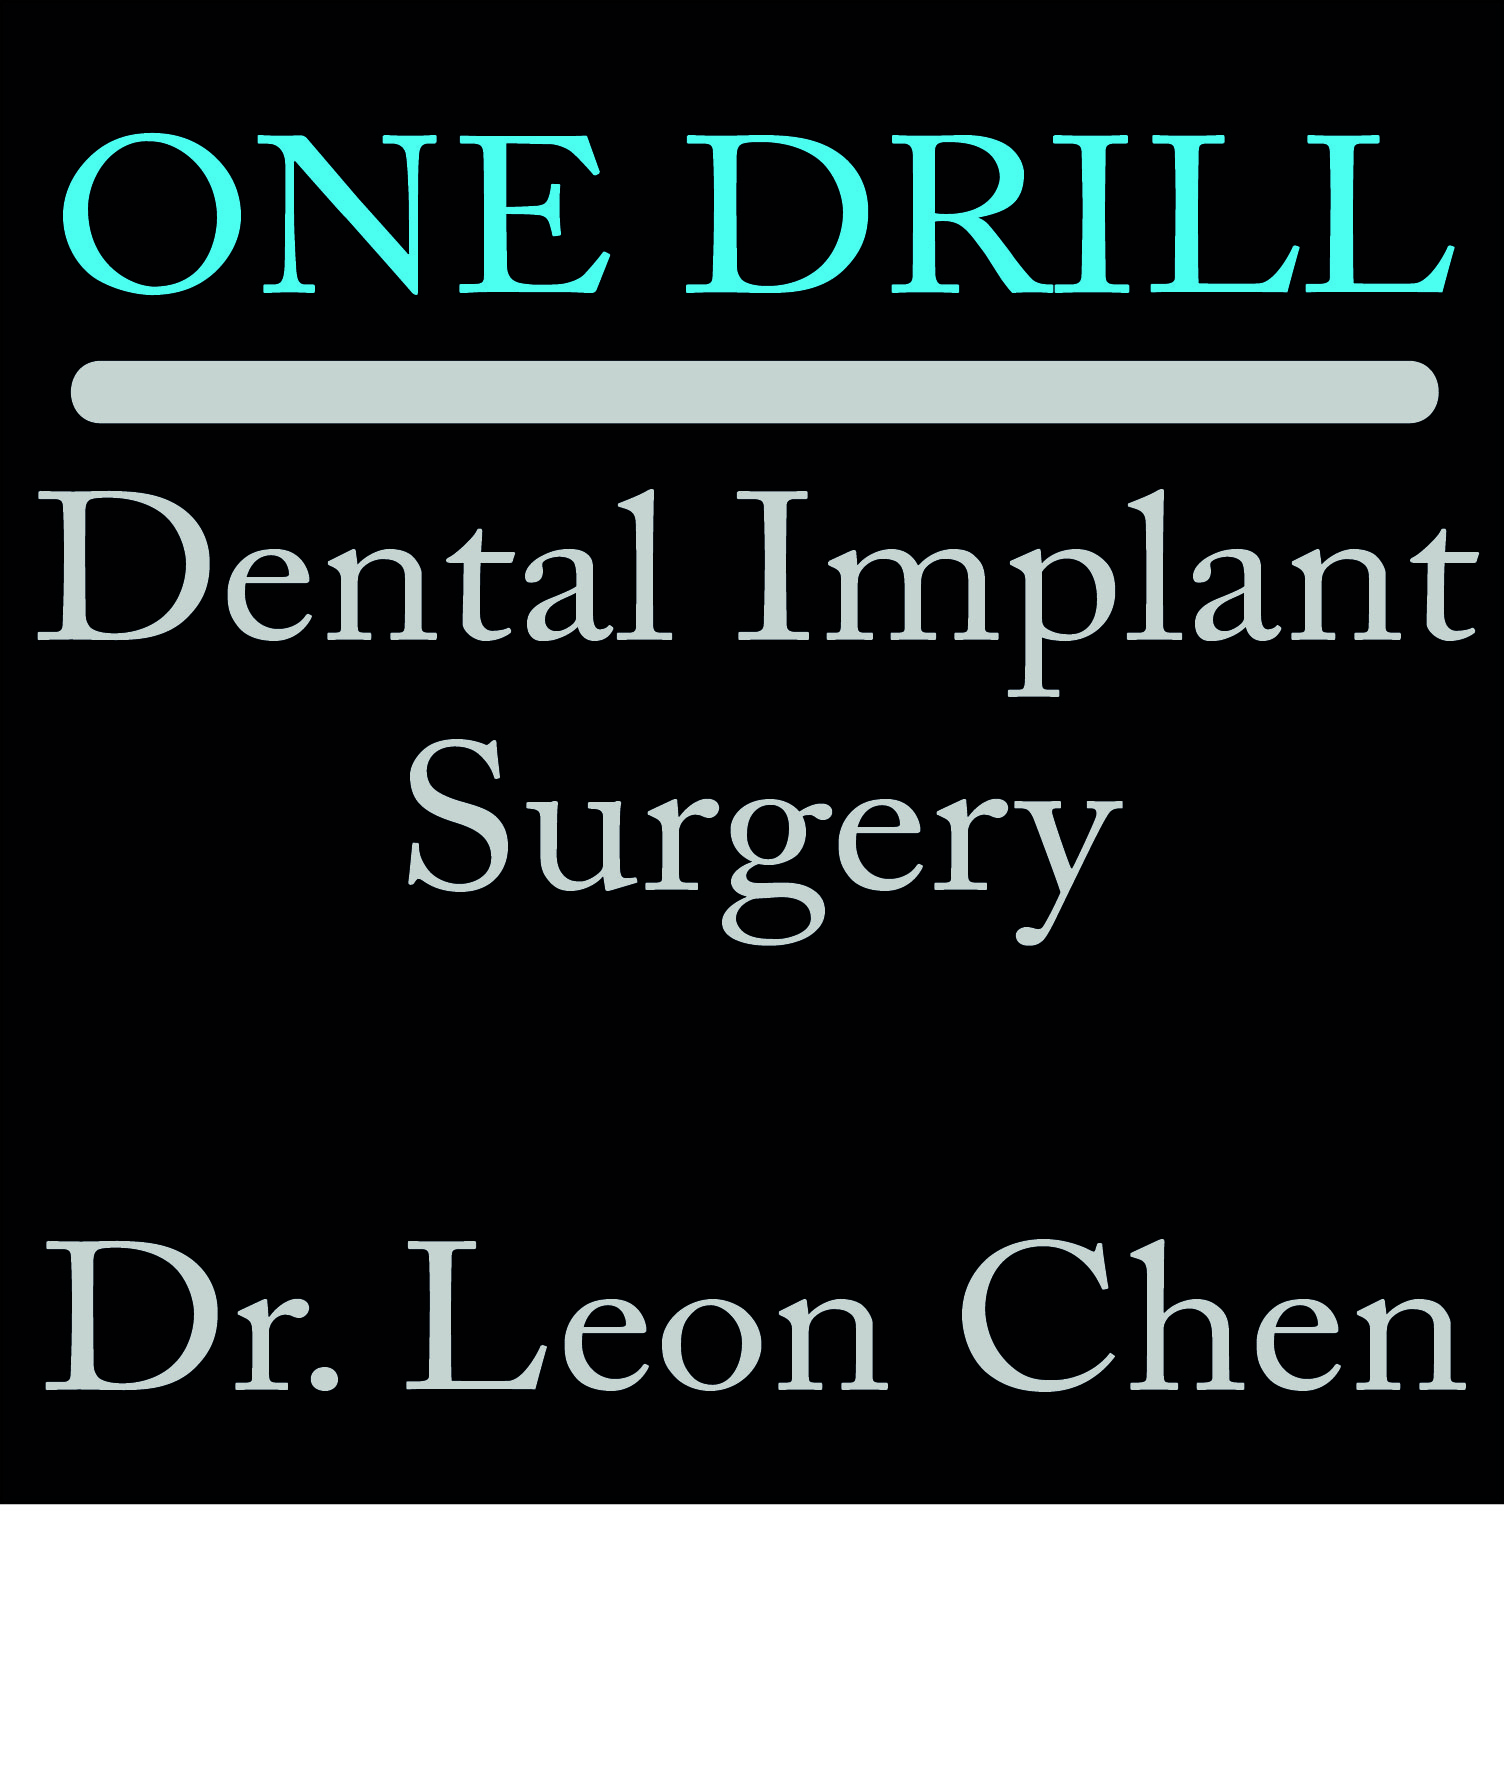 Dr Leon Chen and the One Drill Dental Implant